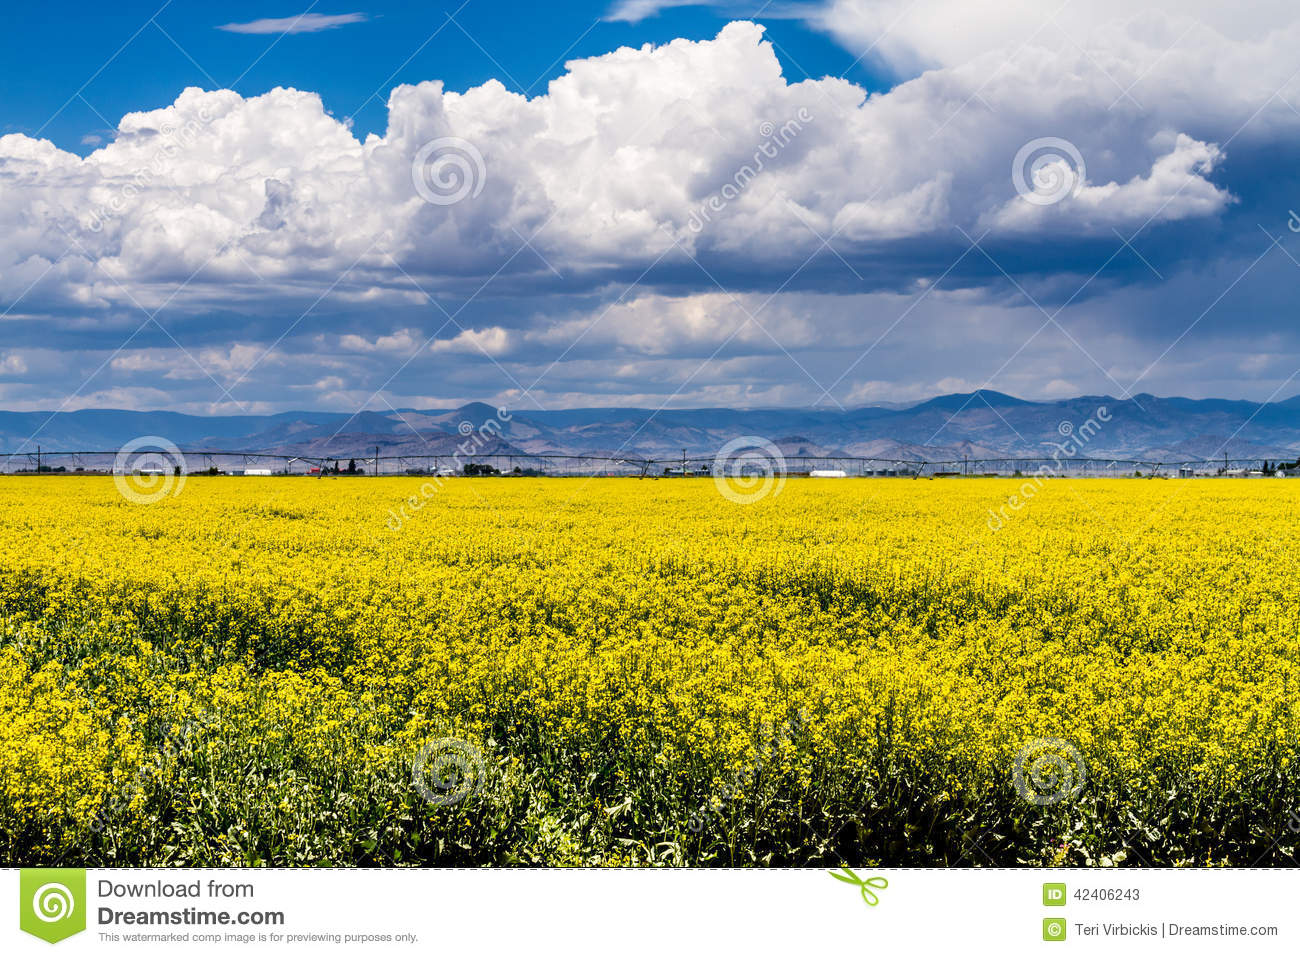 Yellow canola rapeseed fields in bloom stock image image of crops download yellow canola rapeseed fields in bloom stock image image of crops flower mightylinksfo